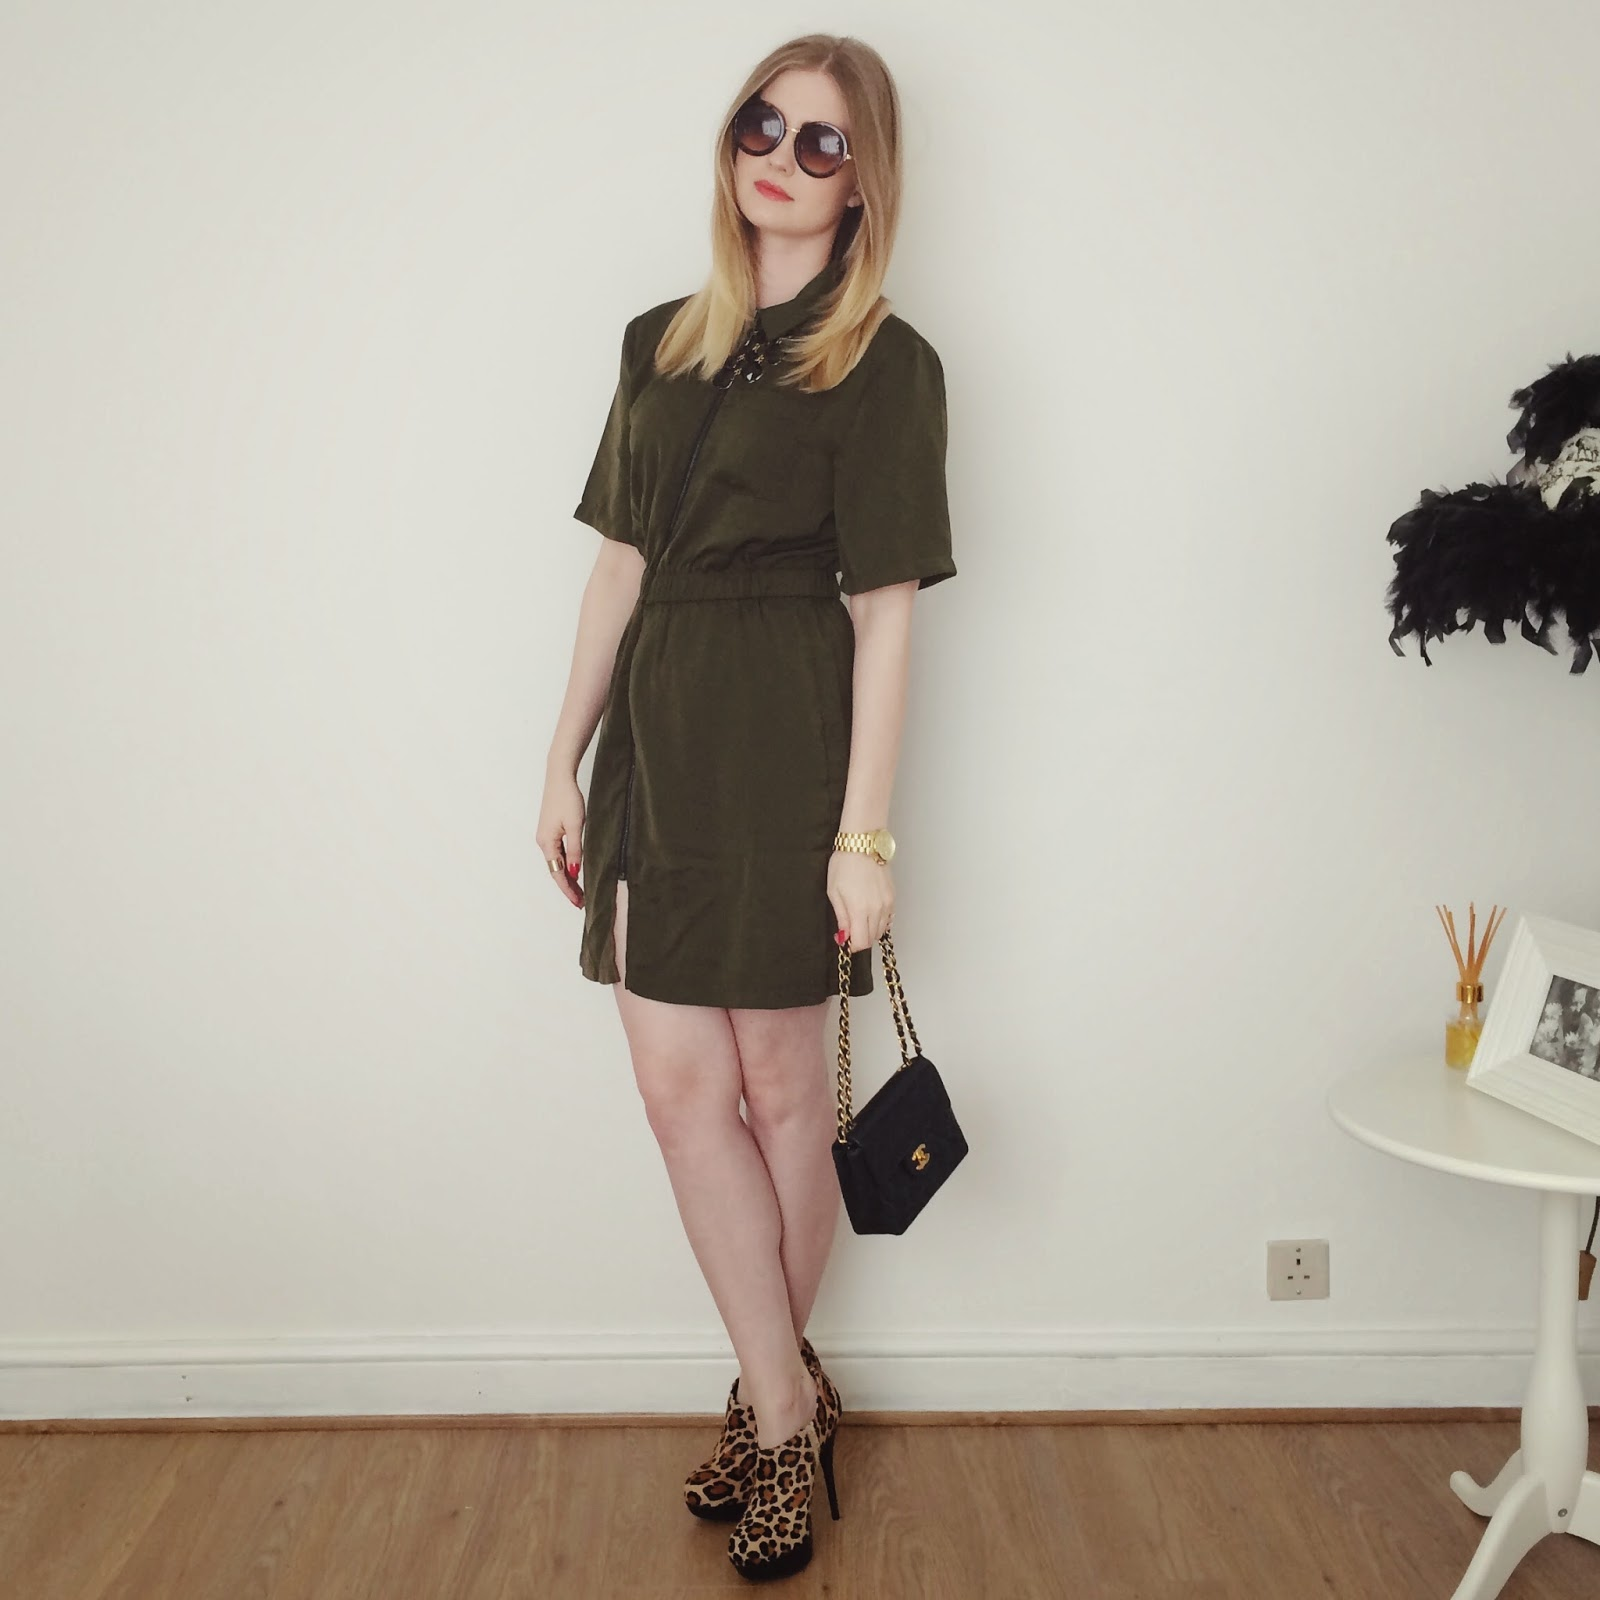 FashionFake, fashion bloggers, military style dress